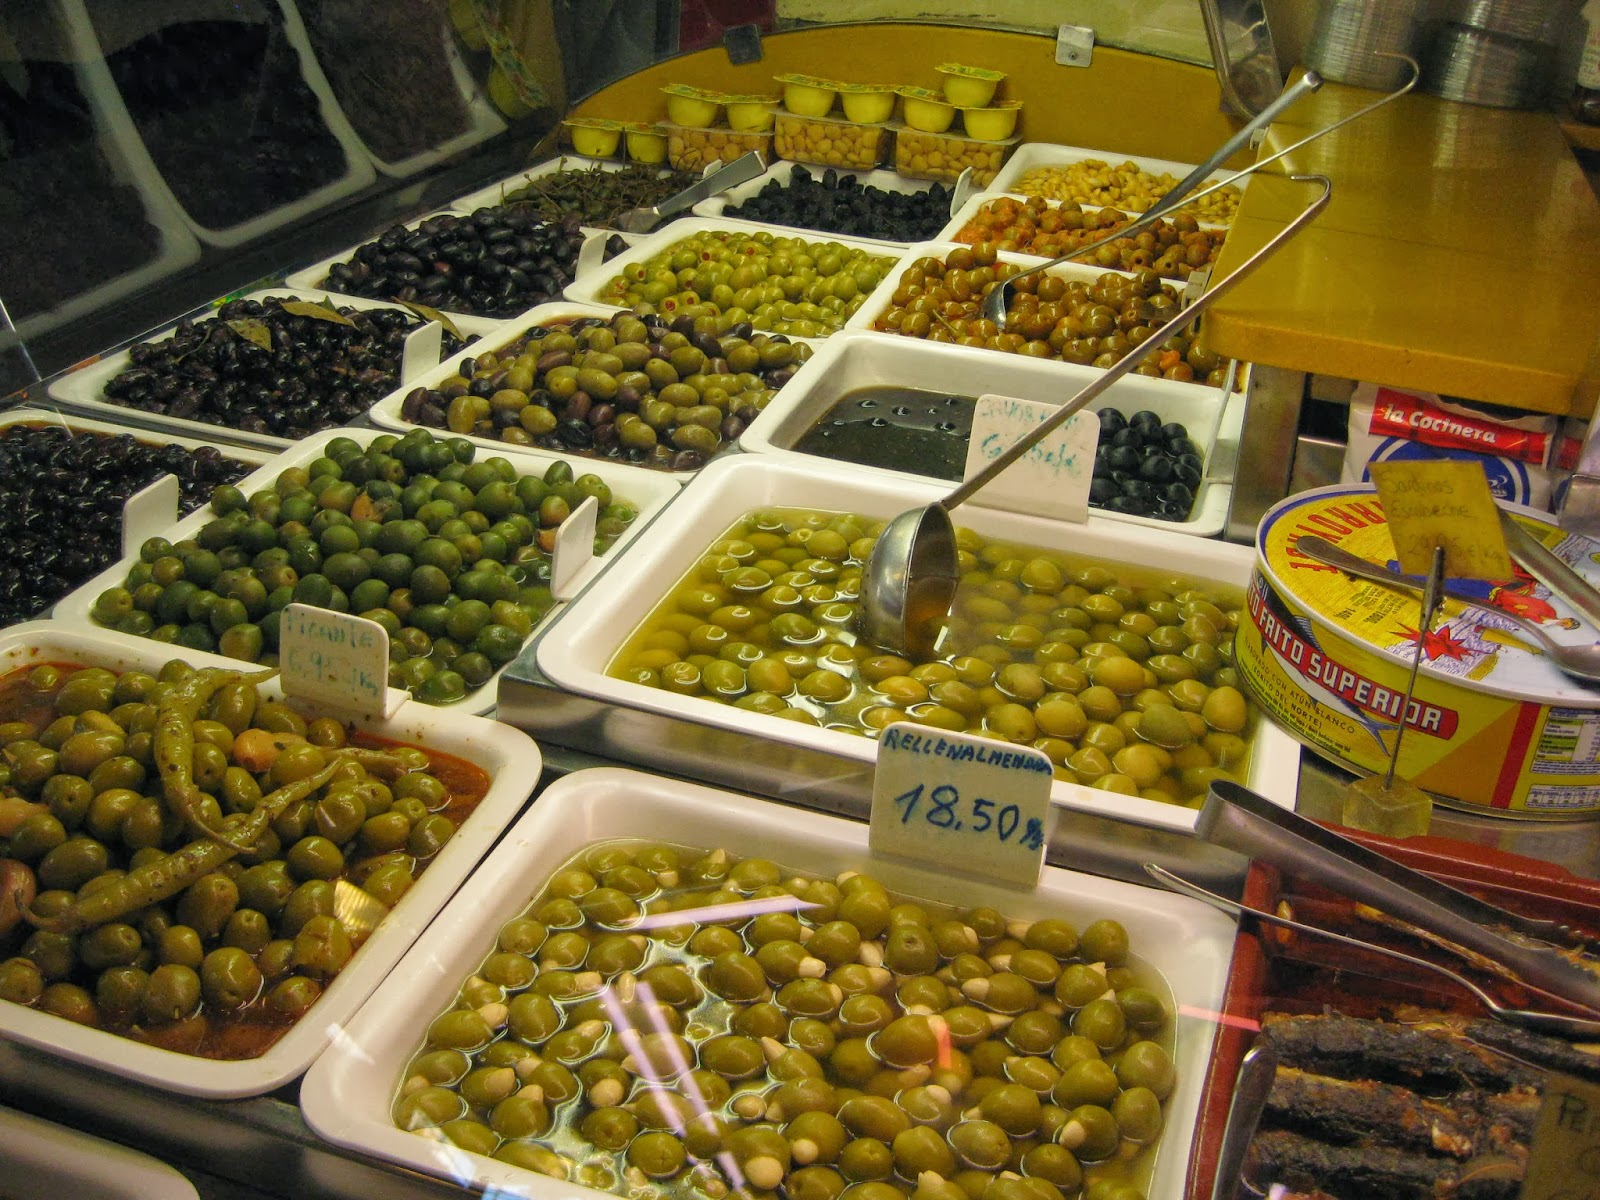 Barcelona - you can find all types of olives at La Boqueria market